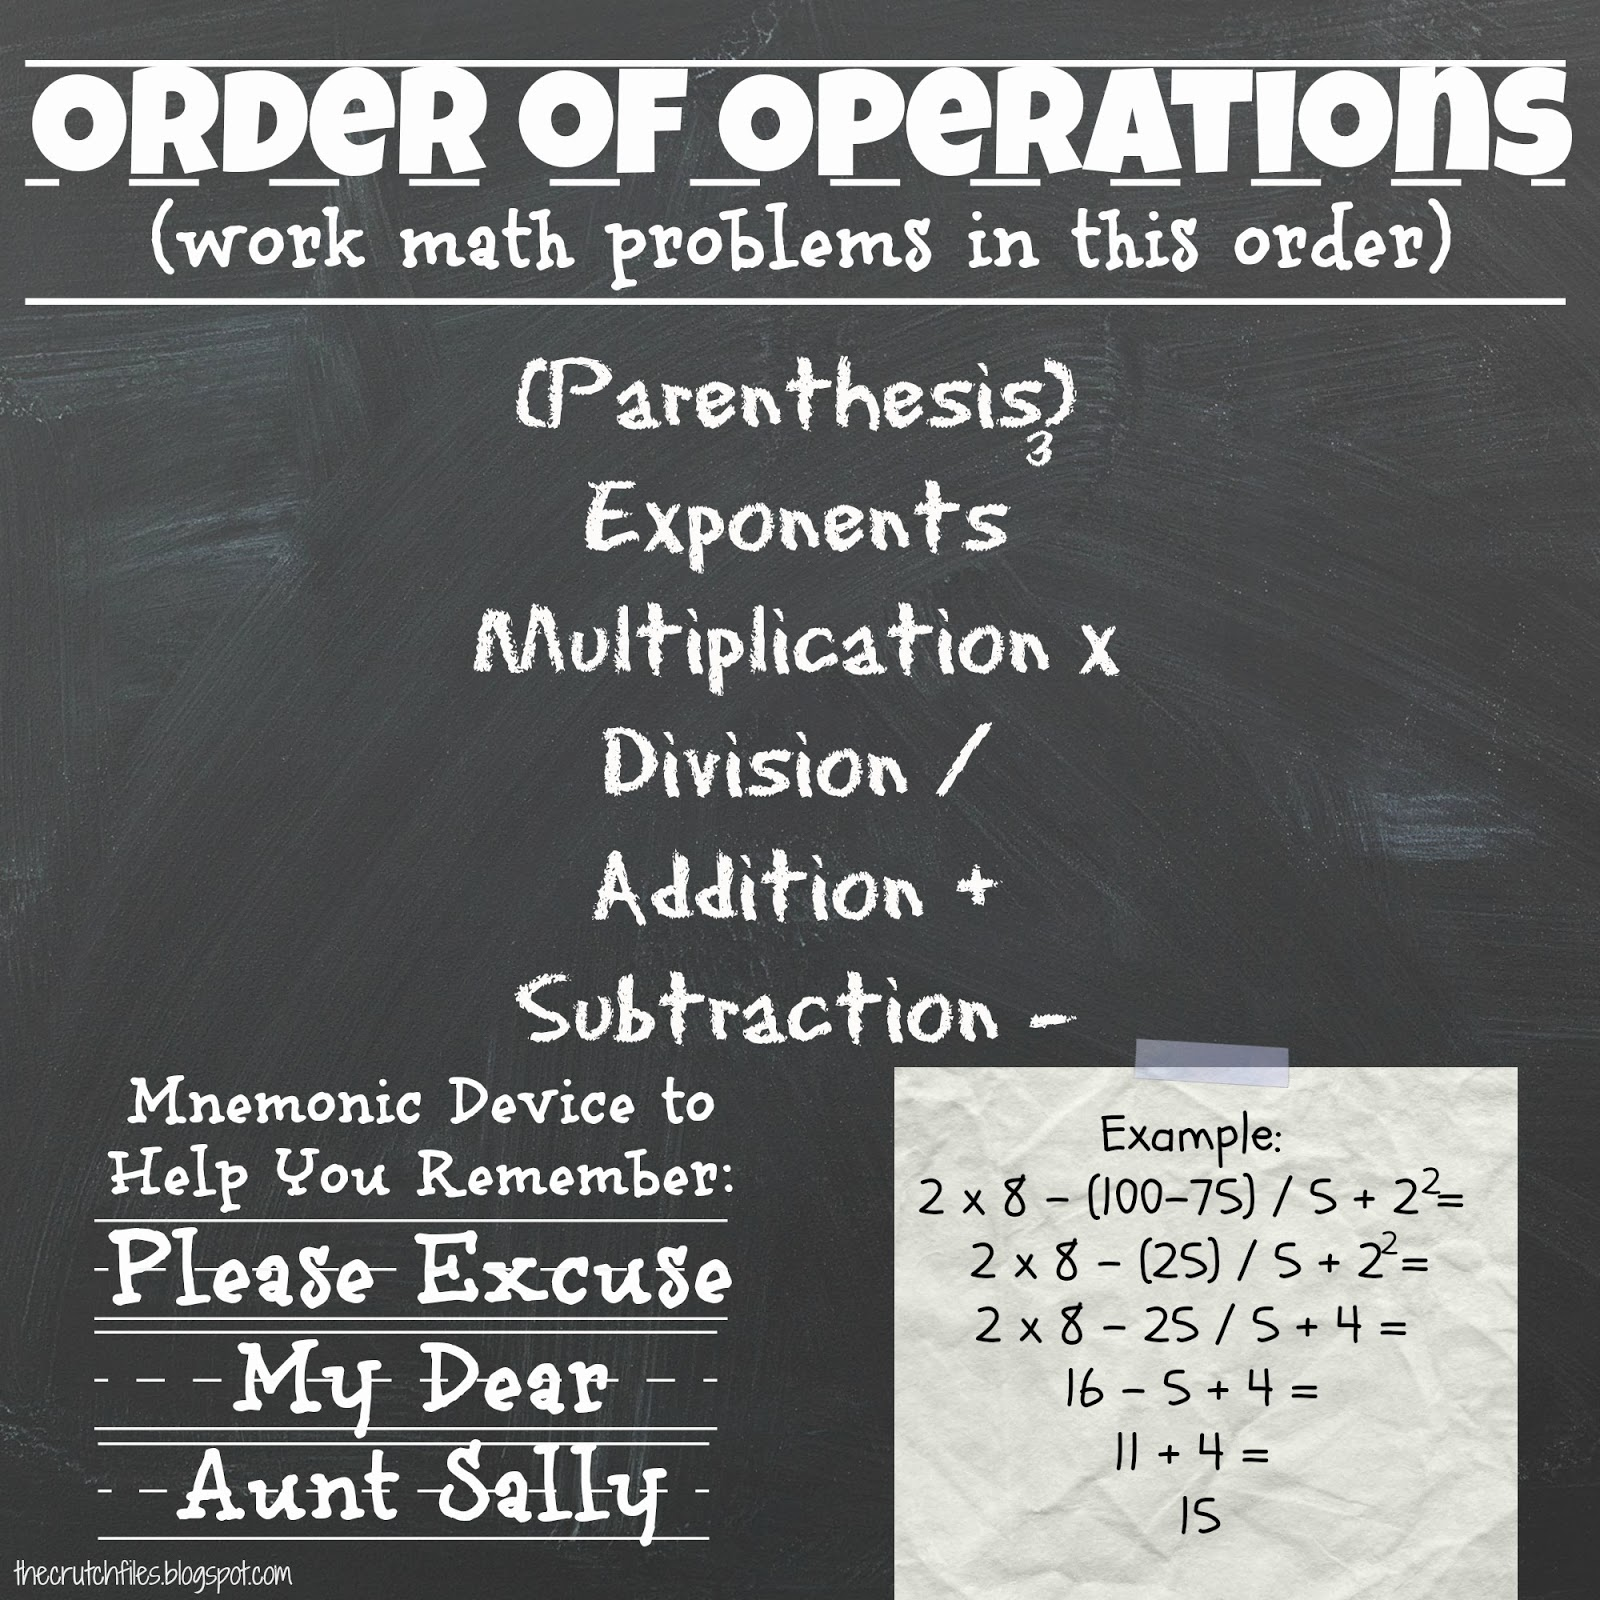 worksheet Order Of Operations Pdf the crutch files order of operations poster so i dont know how to make this a pdf file for you if want copy email me or message on facebook and ill get it you